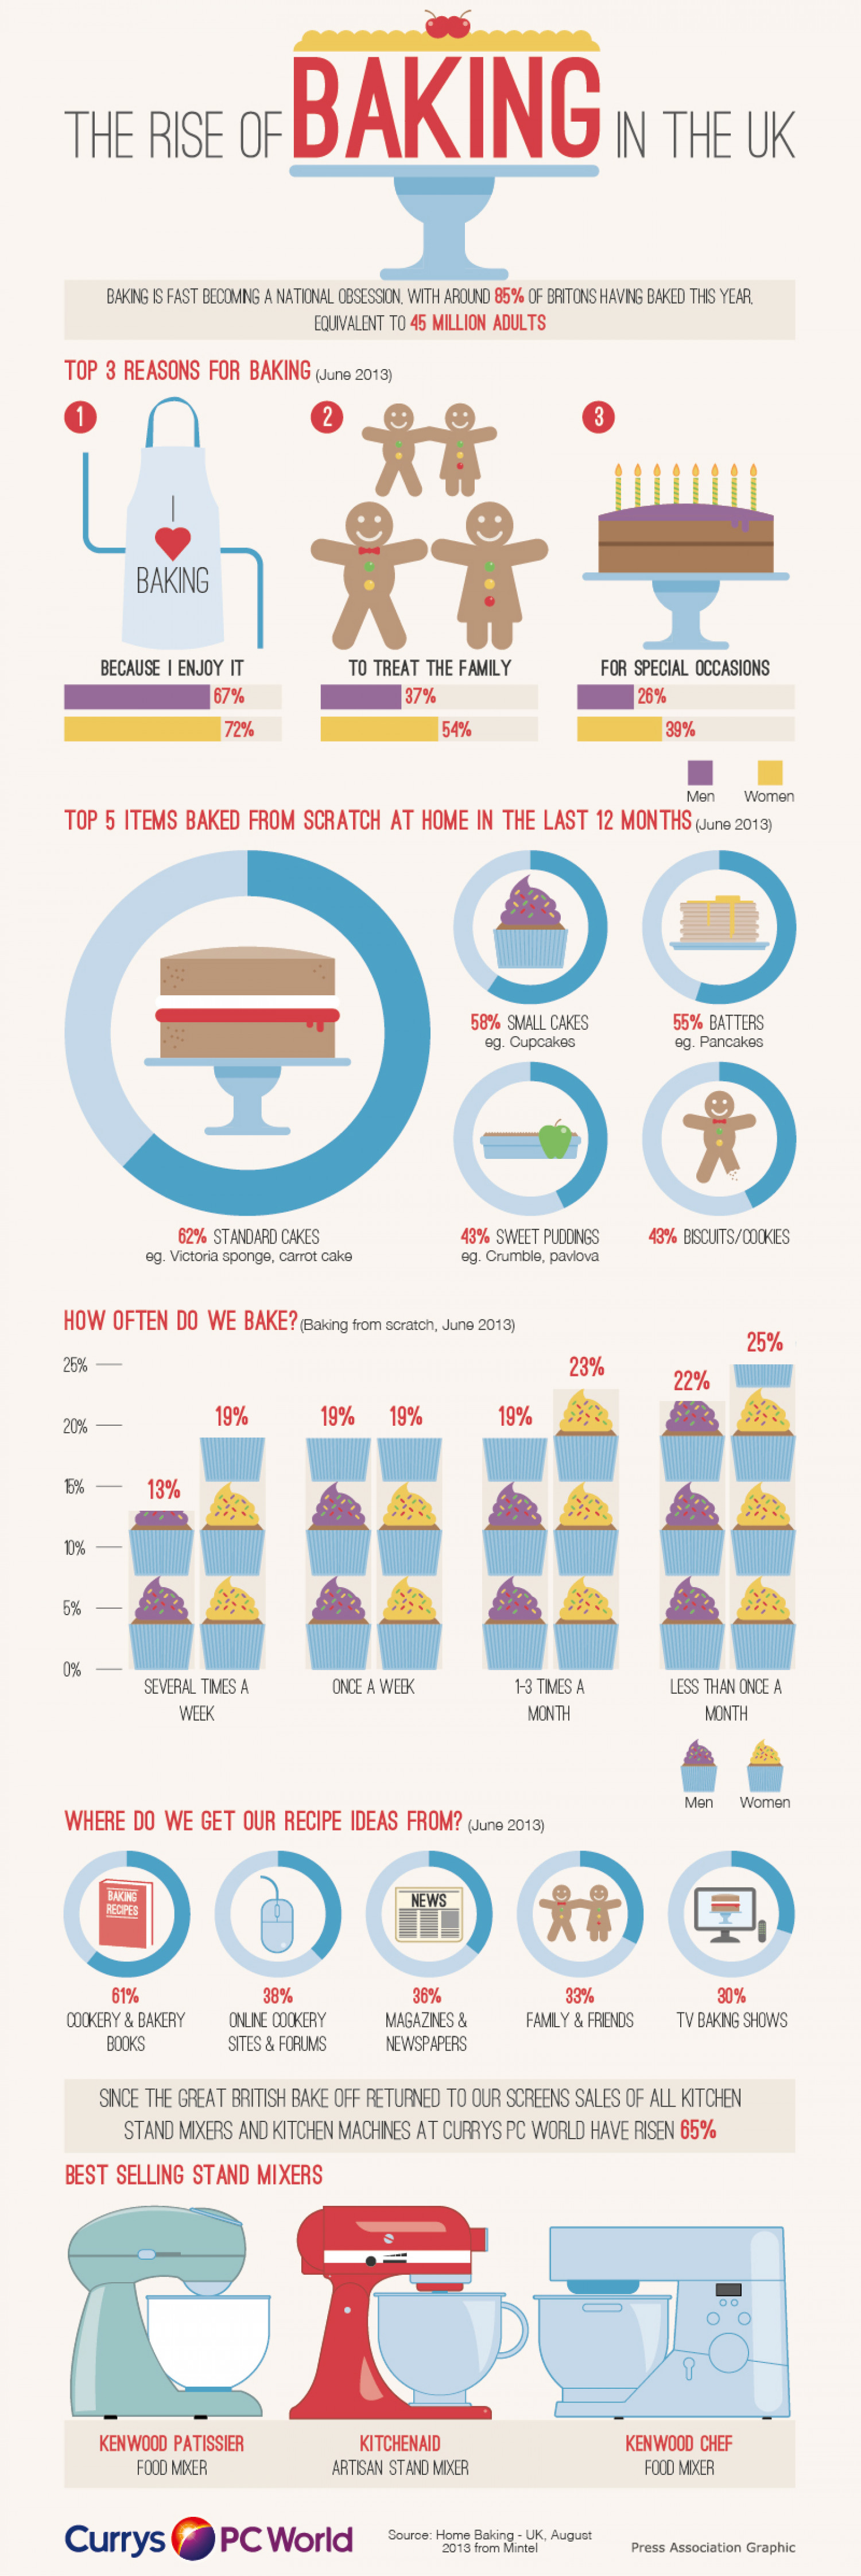 The Rise of Baking in the UK Infographic